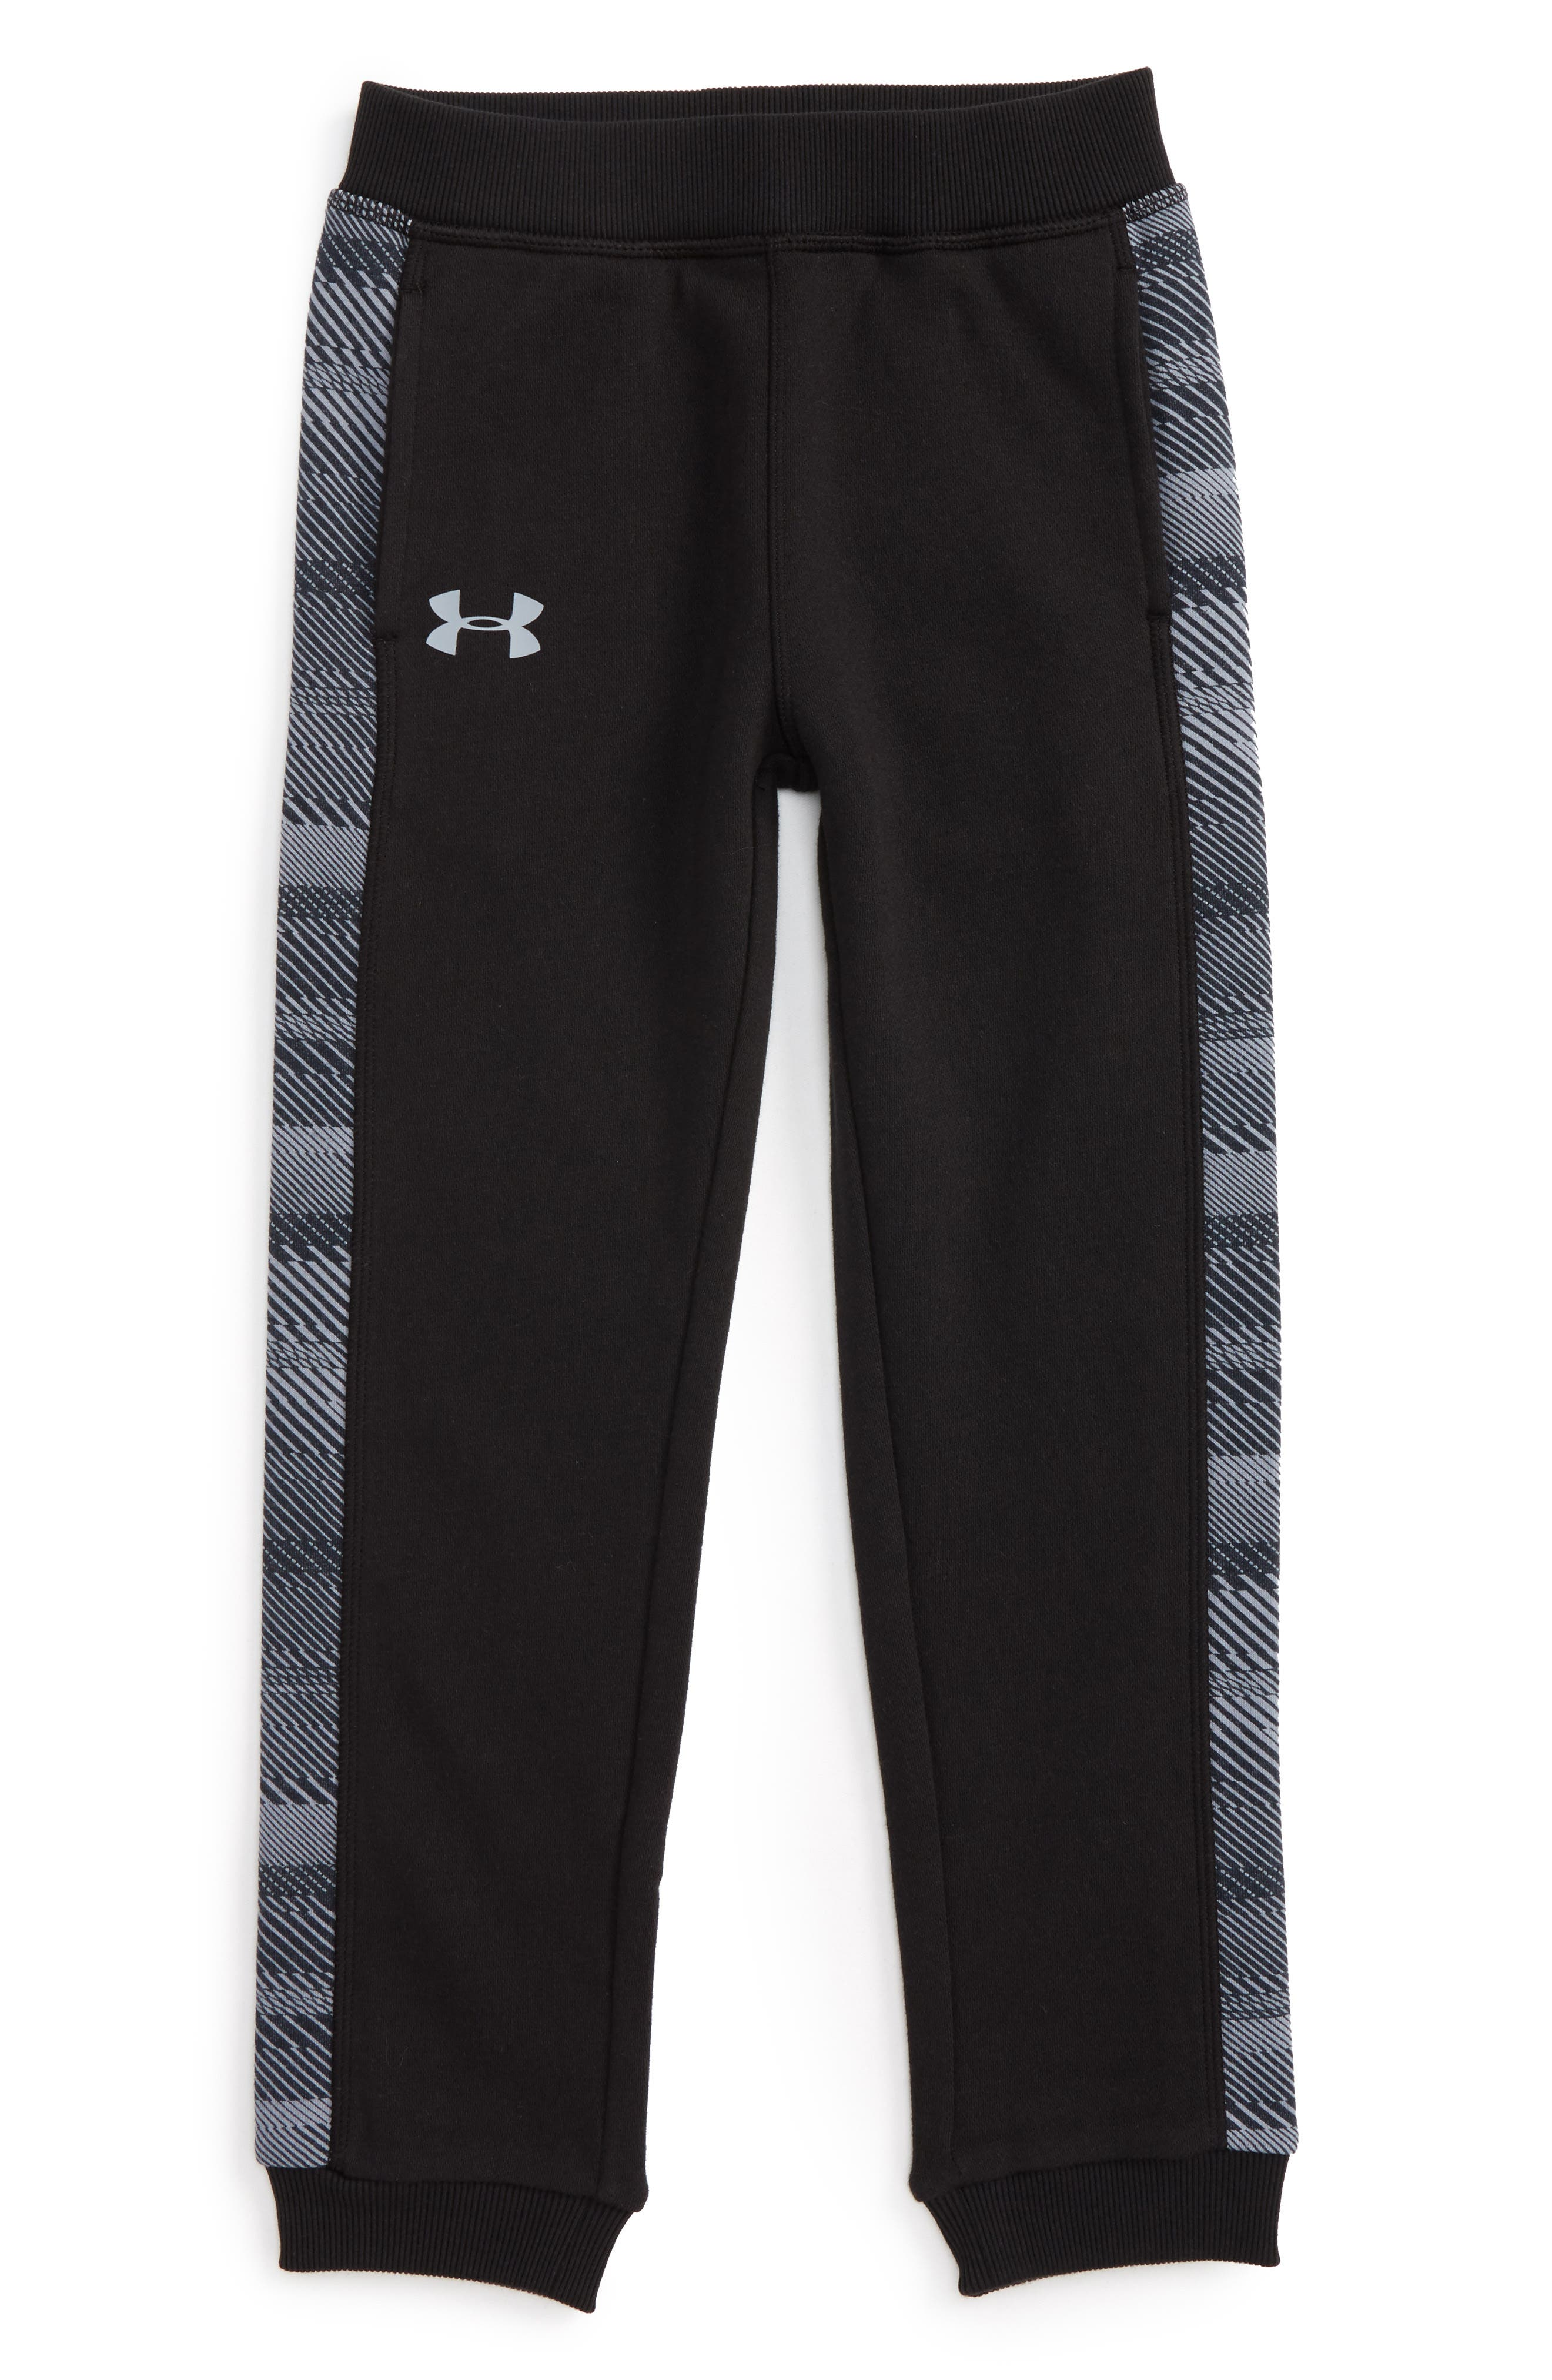 Under Armour Threadborne Pants (Toddler Boys & Little Boys)